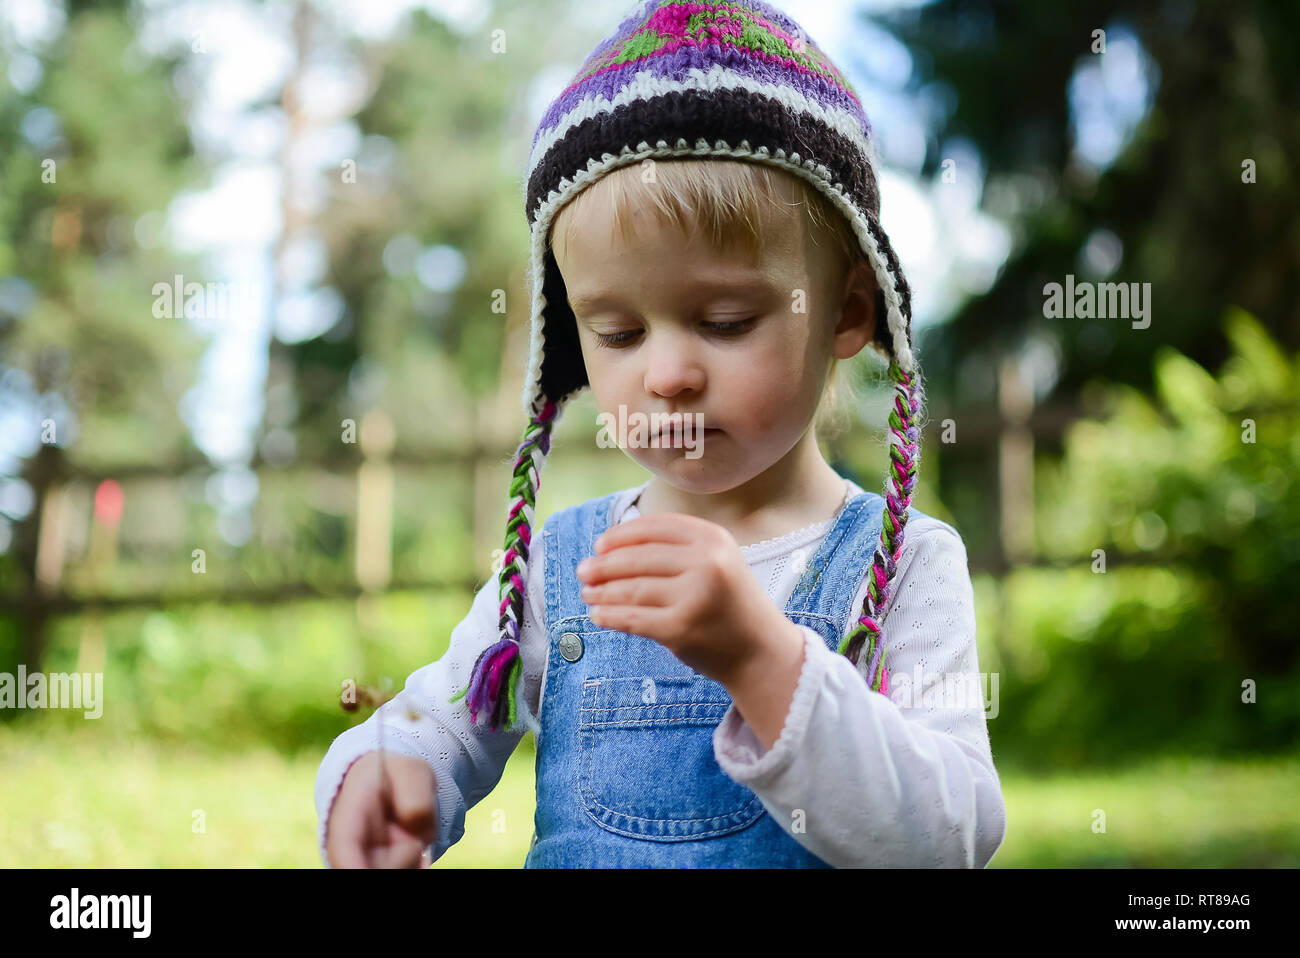 Portrait of little girl wearing knitted hat watching something in her hand - Stock Image